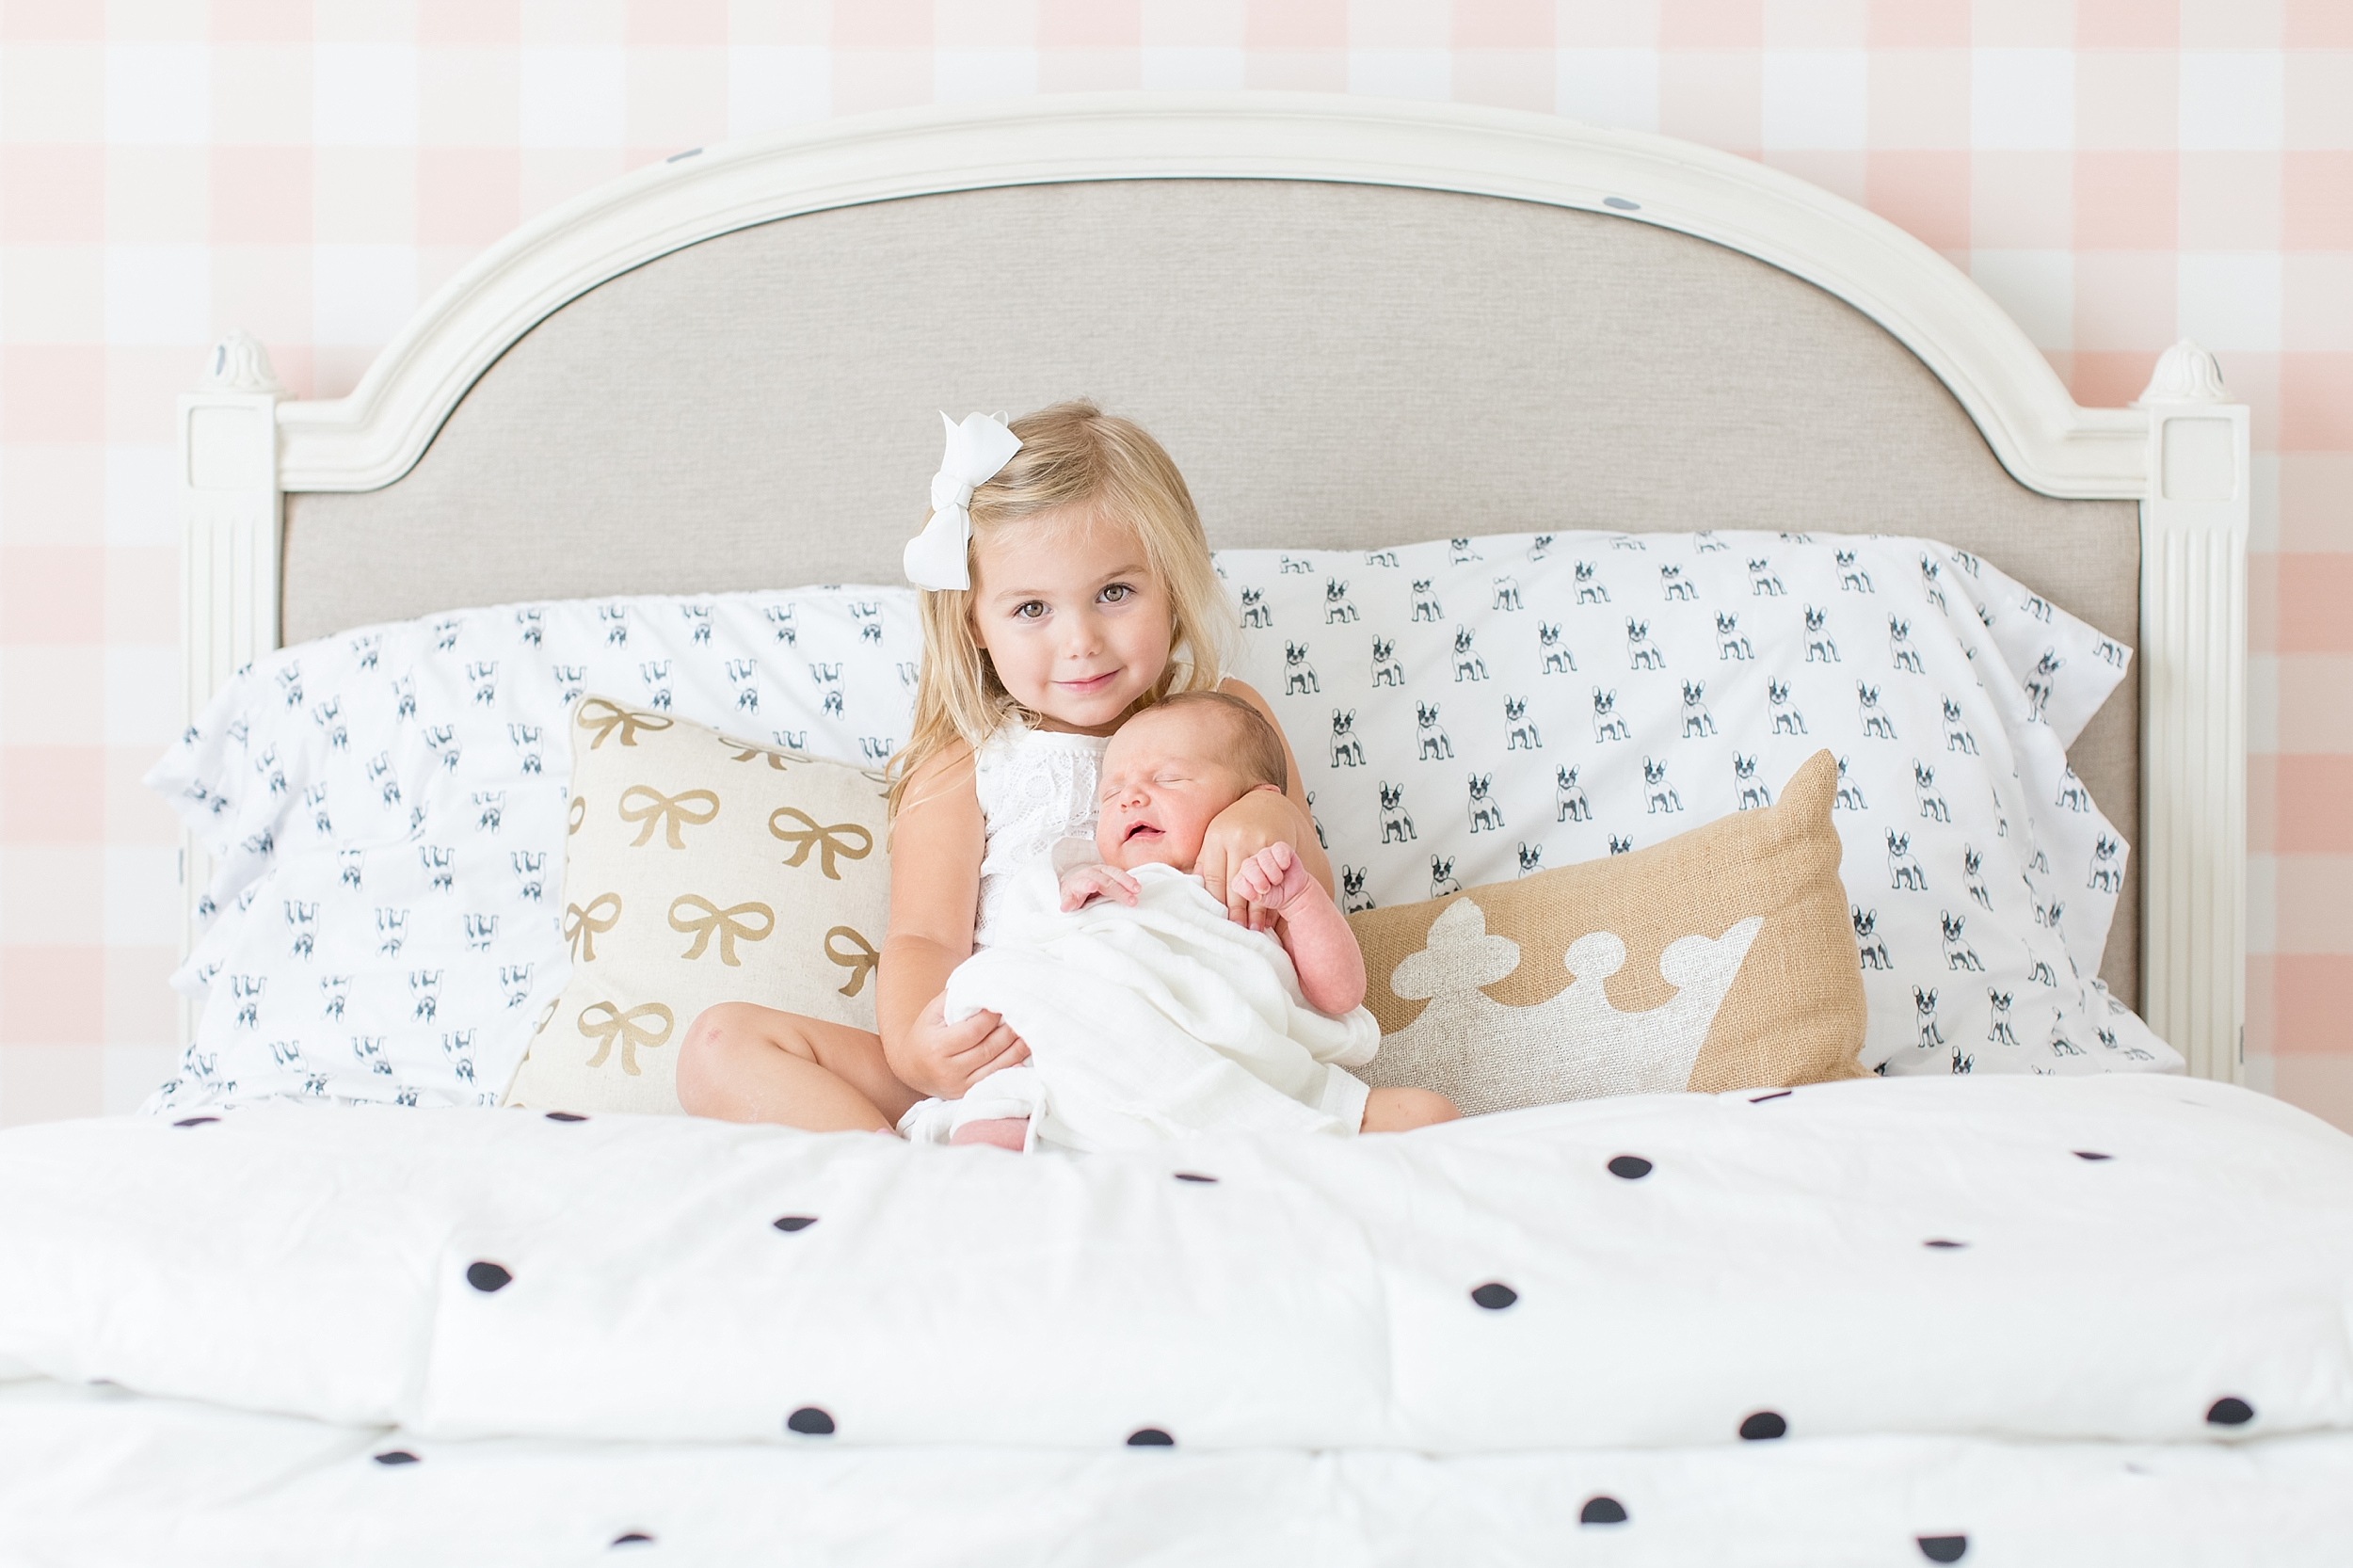 Landon-Schneider-Photography-Newborn-Session-McKinney-Texas_0155.jpg